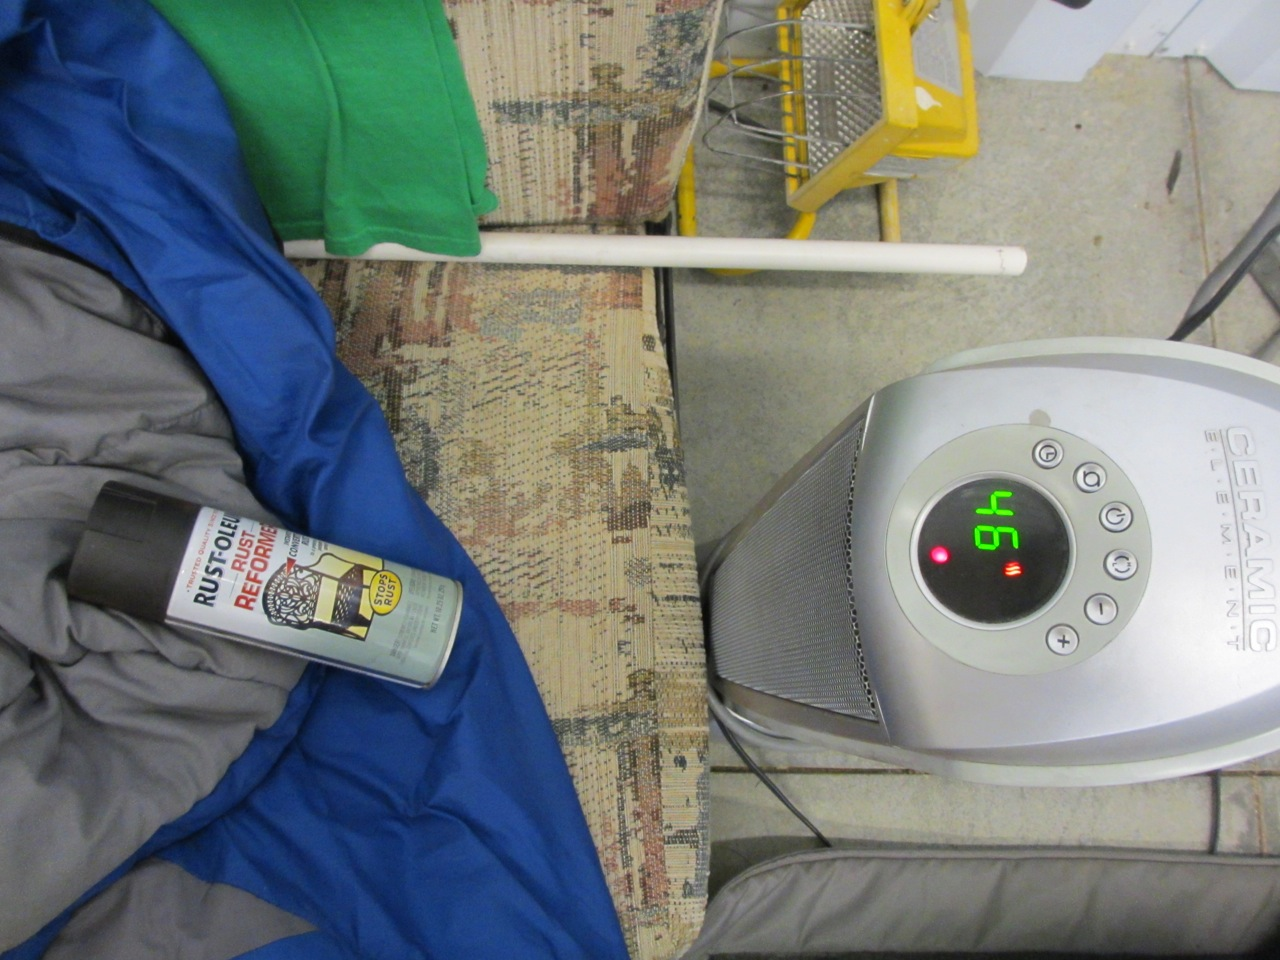 The Rust-Oleum has to be around 55°degrees to use. So we had to warm it up in front of the space heater.